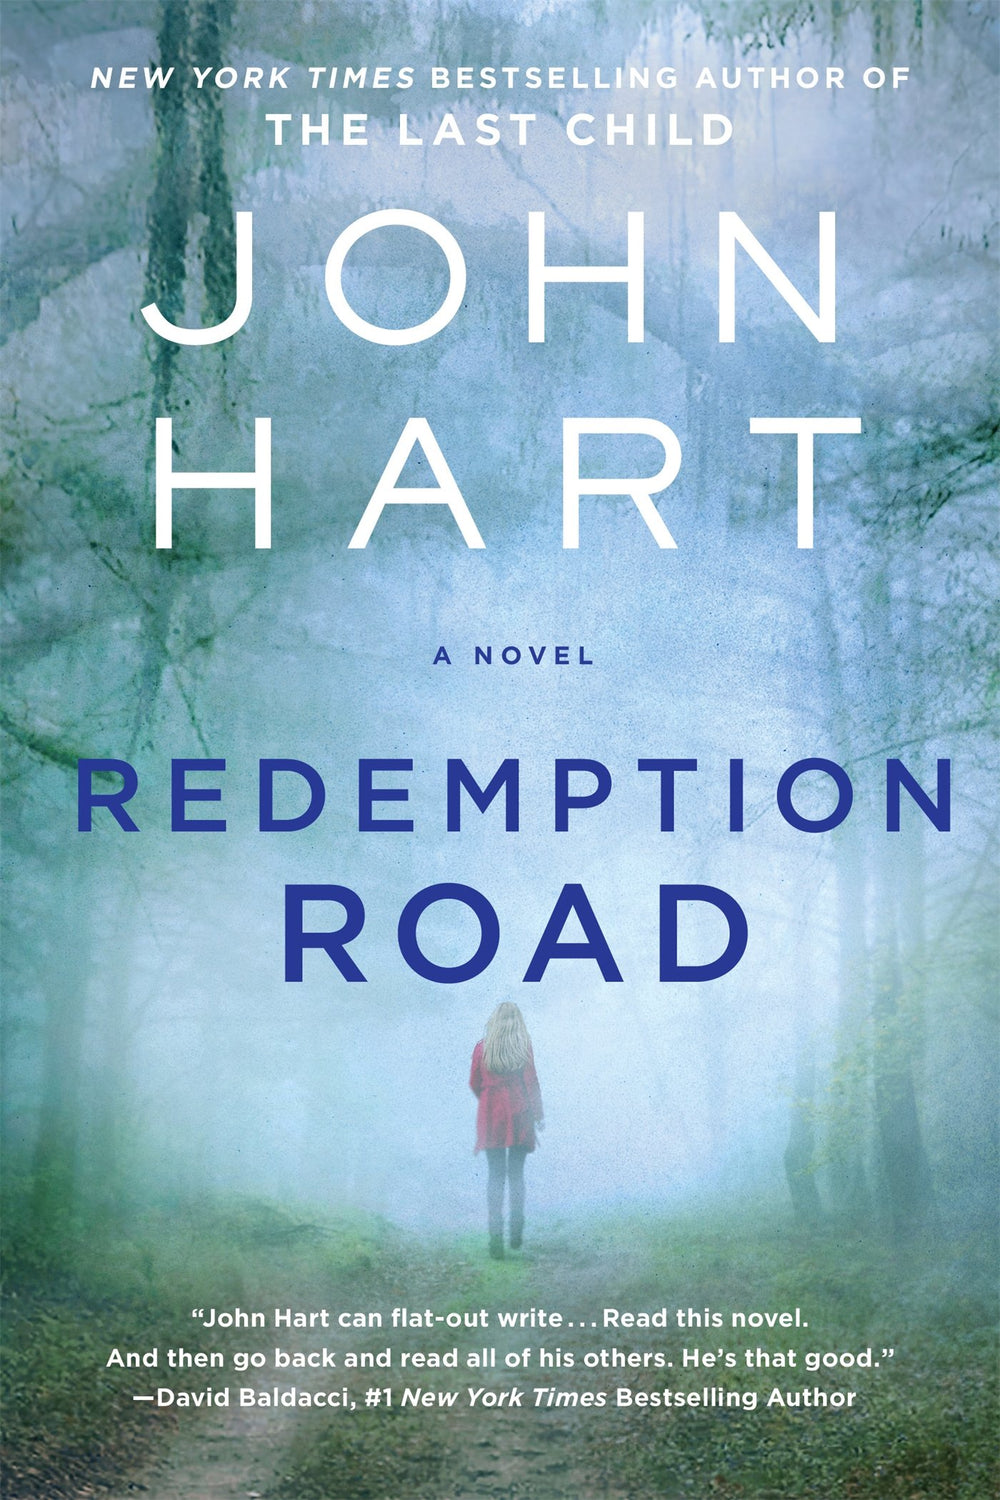 Redemption Road by John Hart